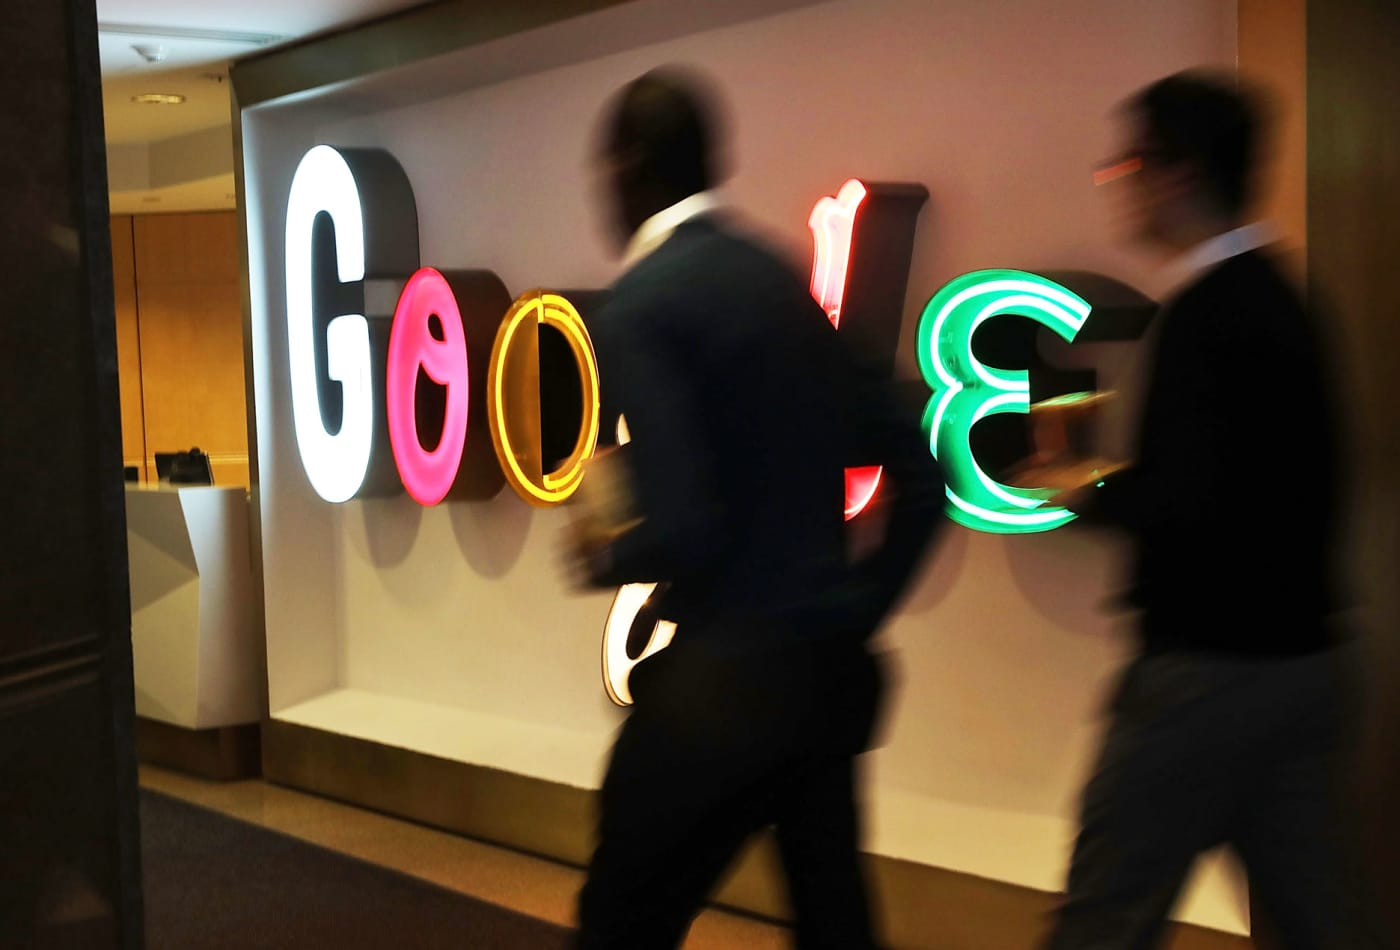 Google restricts travel as coronavirus outbreak spreads and employee in Switzerland tests positive